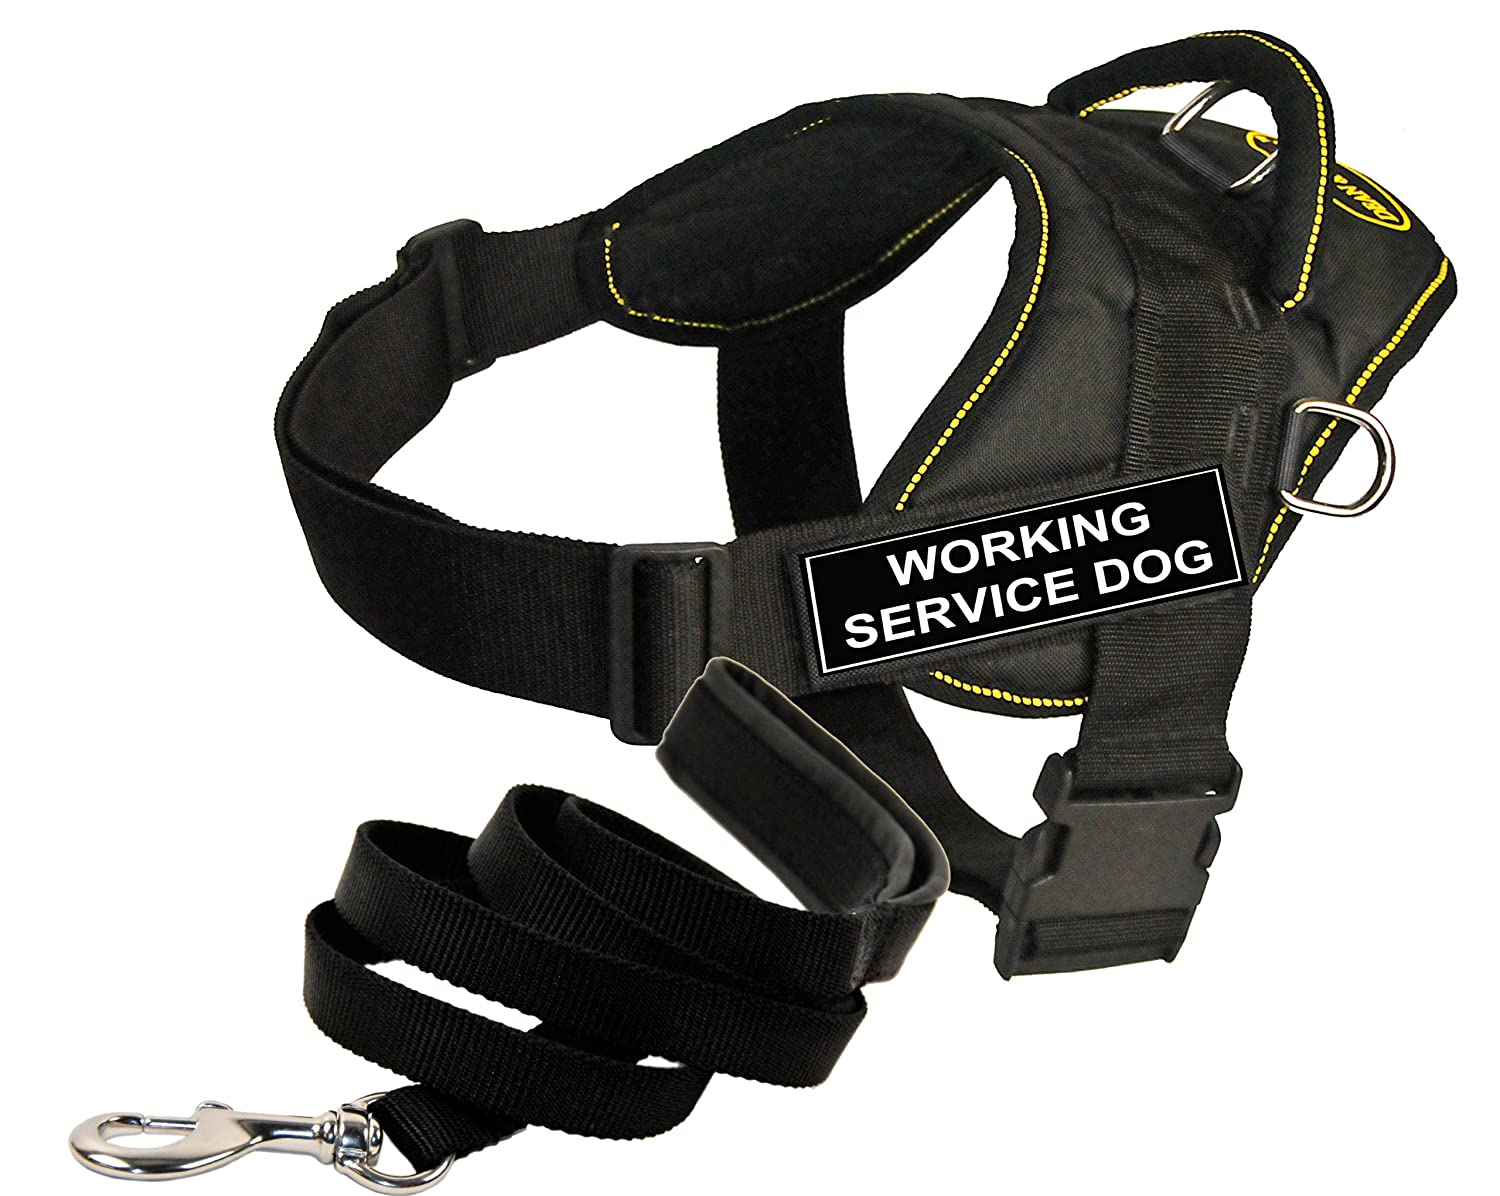 Dean And Tyler Bundle – – – One opere DT Fun Harness, Lavoro Service Dog, giallo Trim, XL + One Padded Puppy Leash, 1,8 m Stainless Snap – Nero d1b9b5